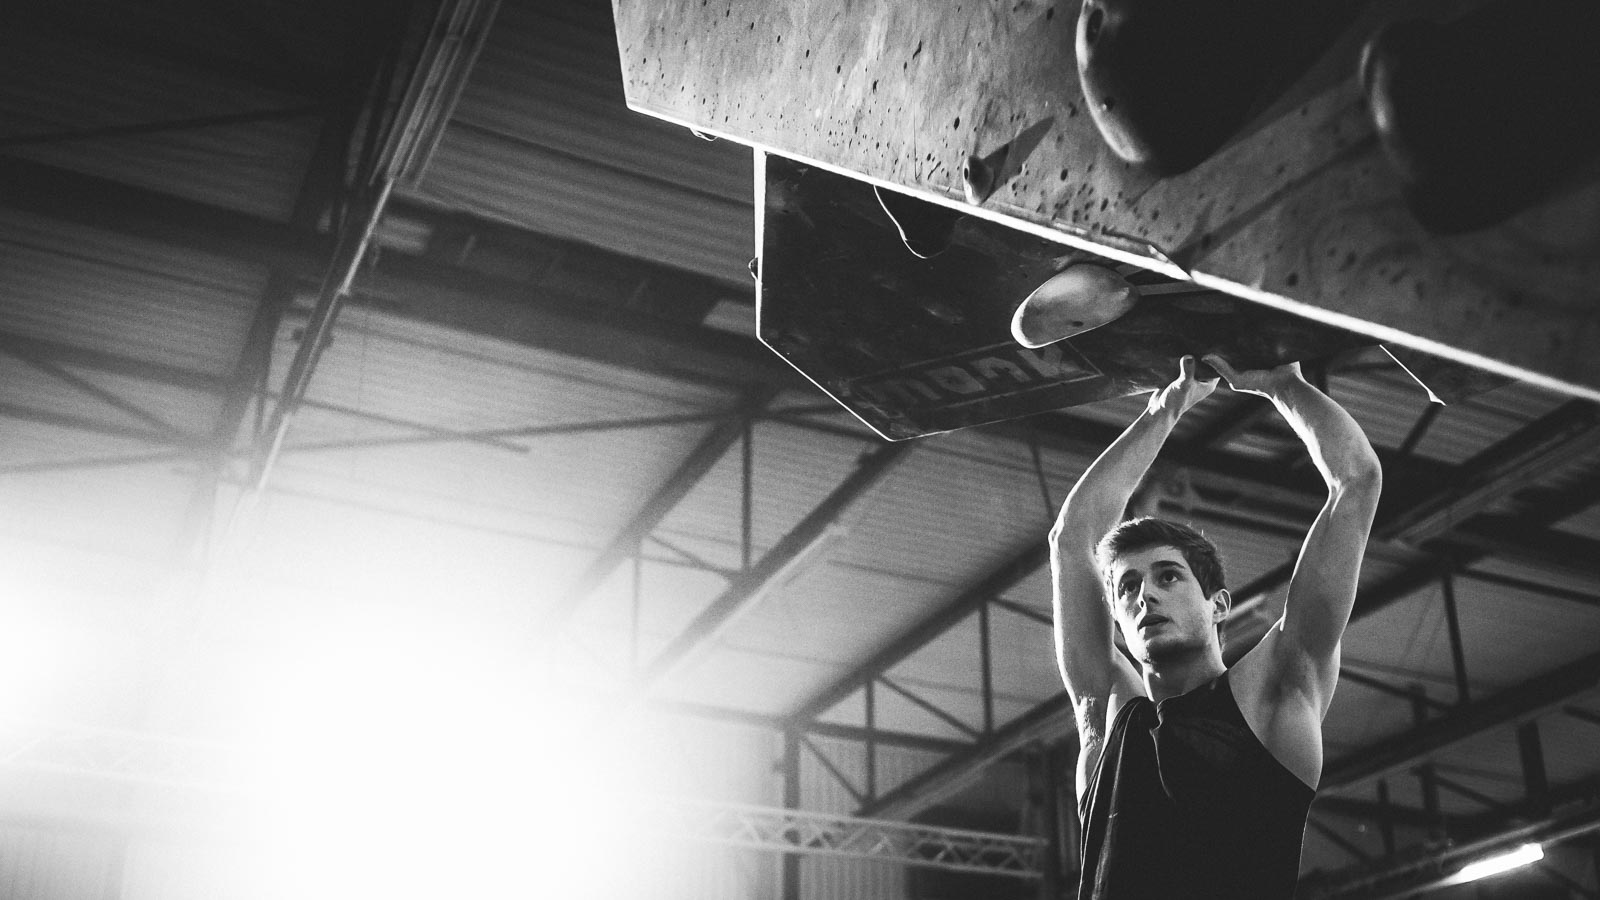 Focus on an the face of an athlete before climbing